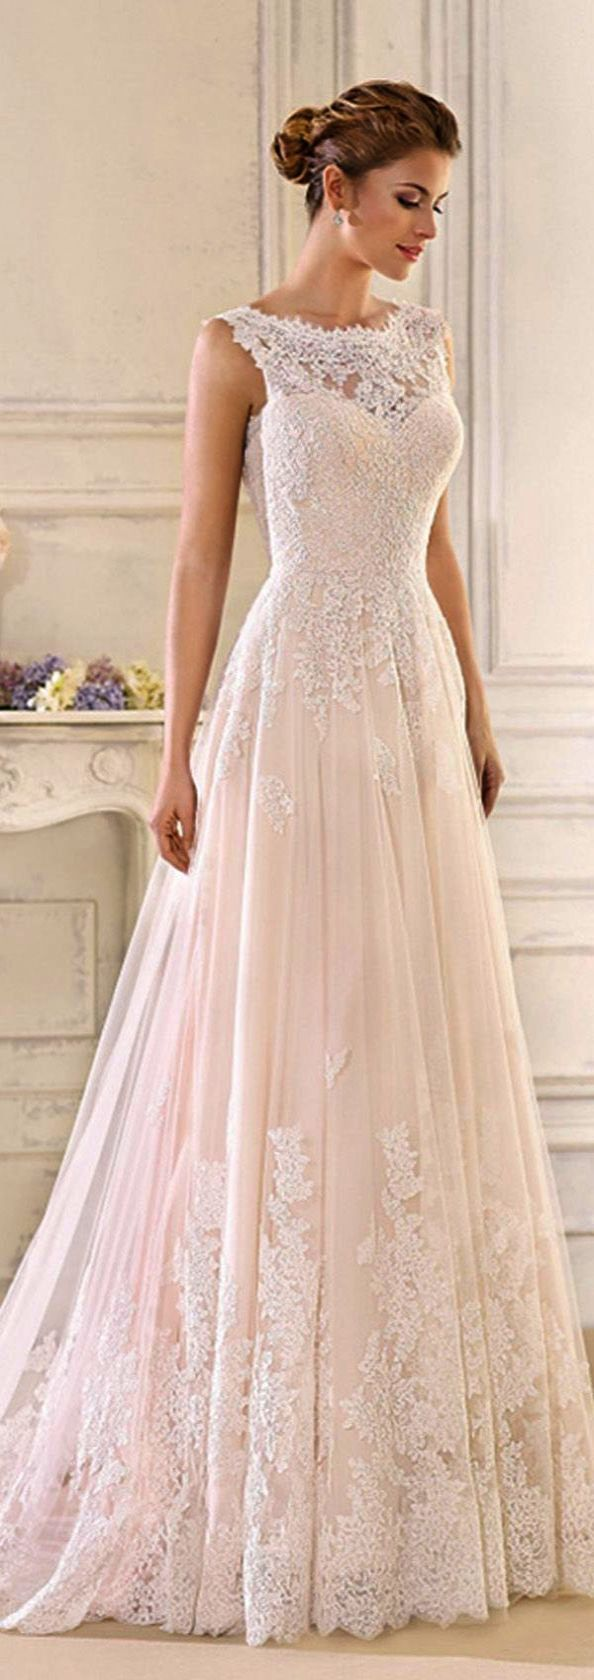 Mermaid wedding dresses with lace  Lace Wedding Dress Not Strapless Lace Mermaid Wedding Dress With